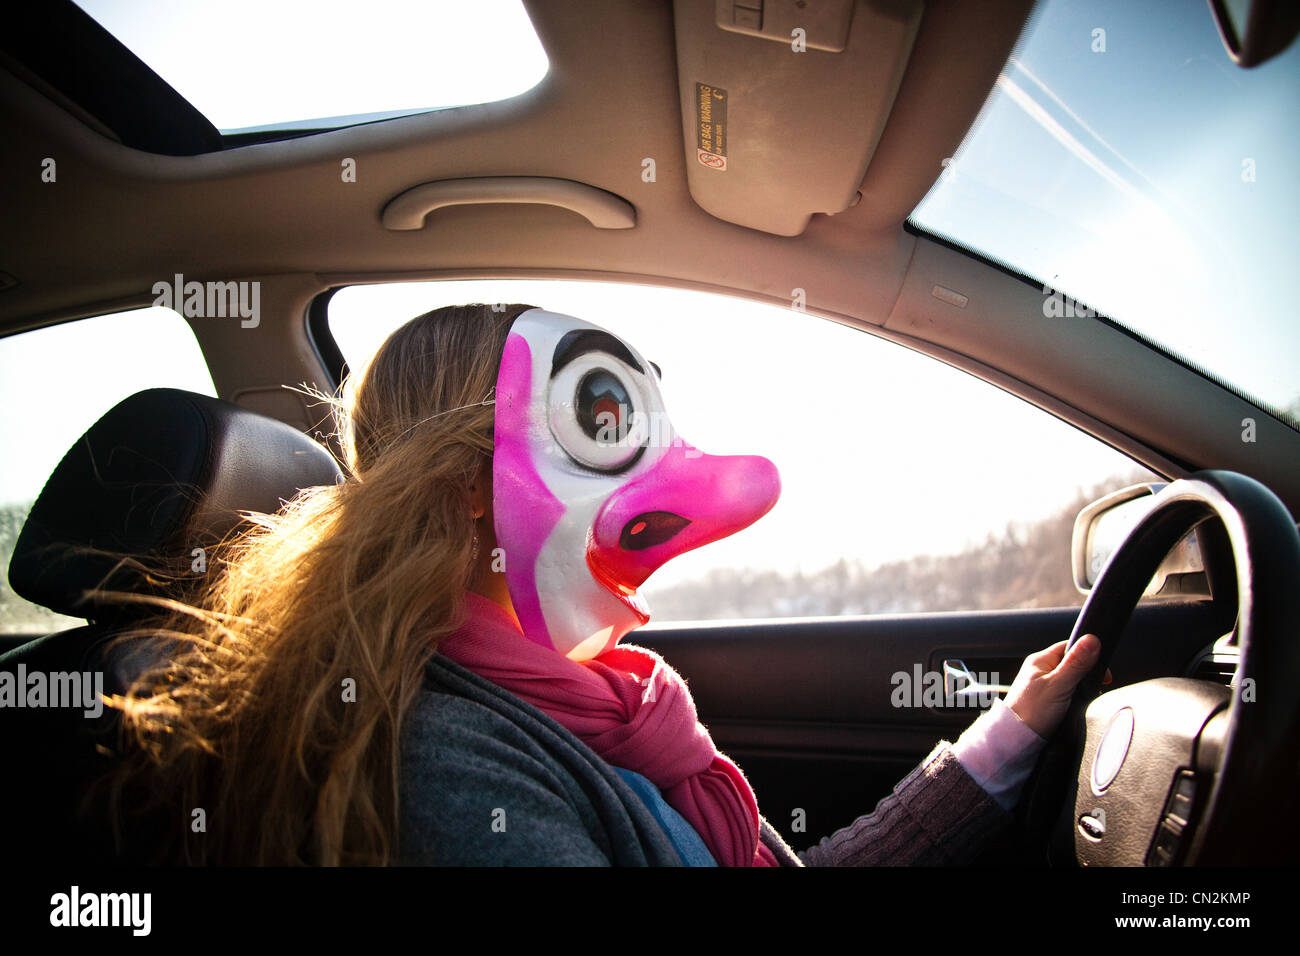 Femme au volant voiture portant un masque de clown Photo Stock